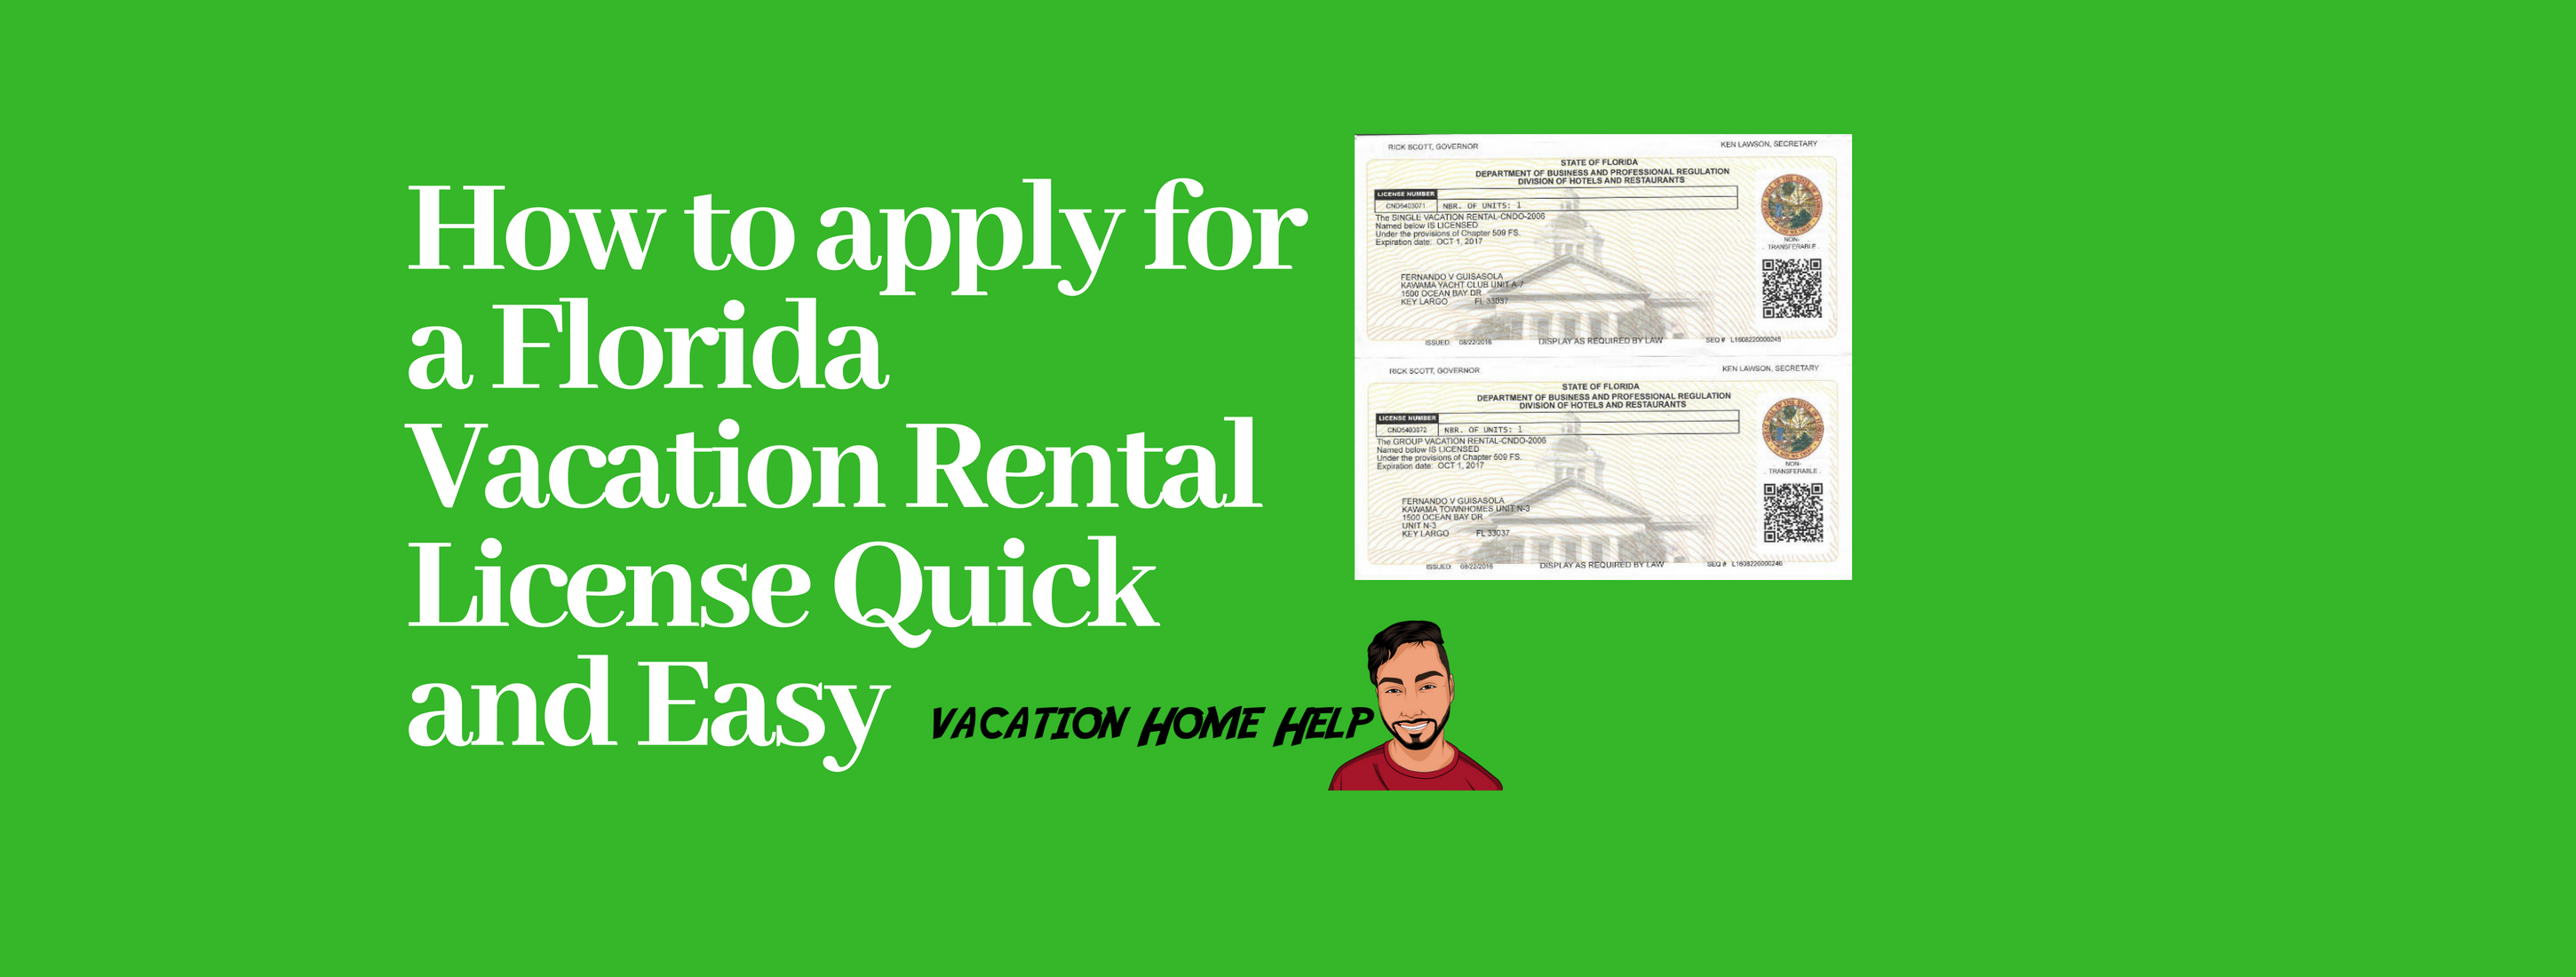 Florida Vacation Rental License